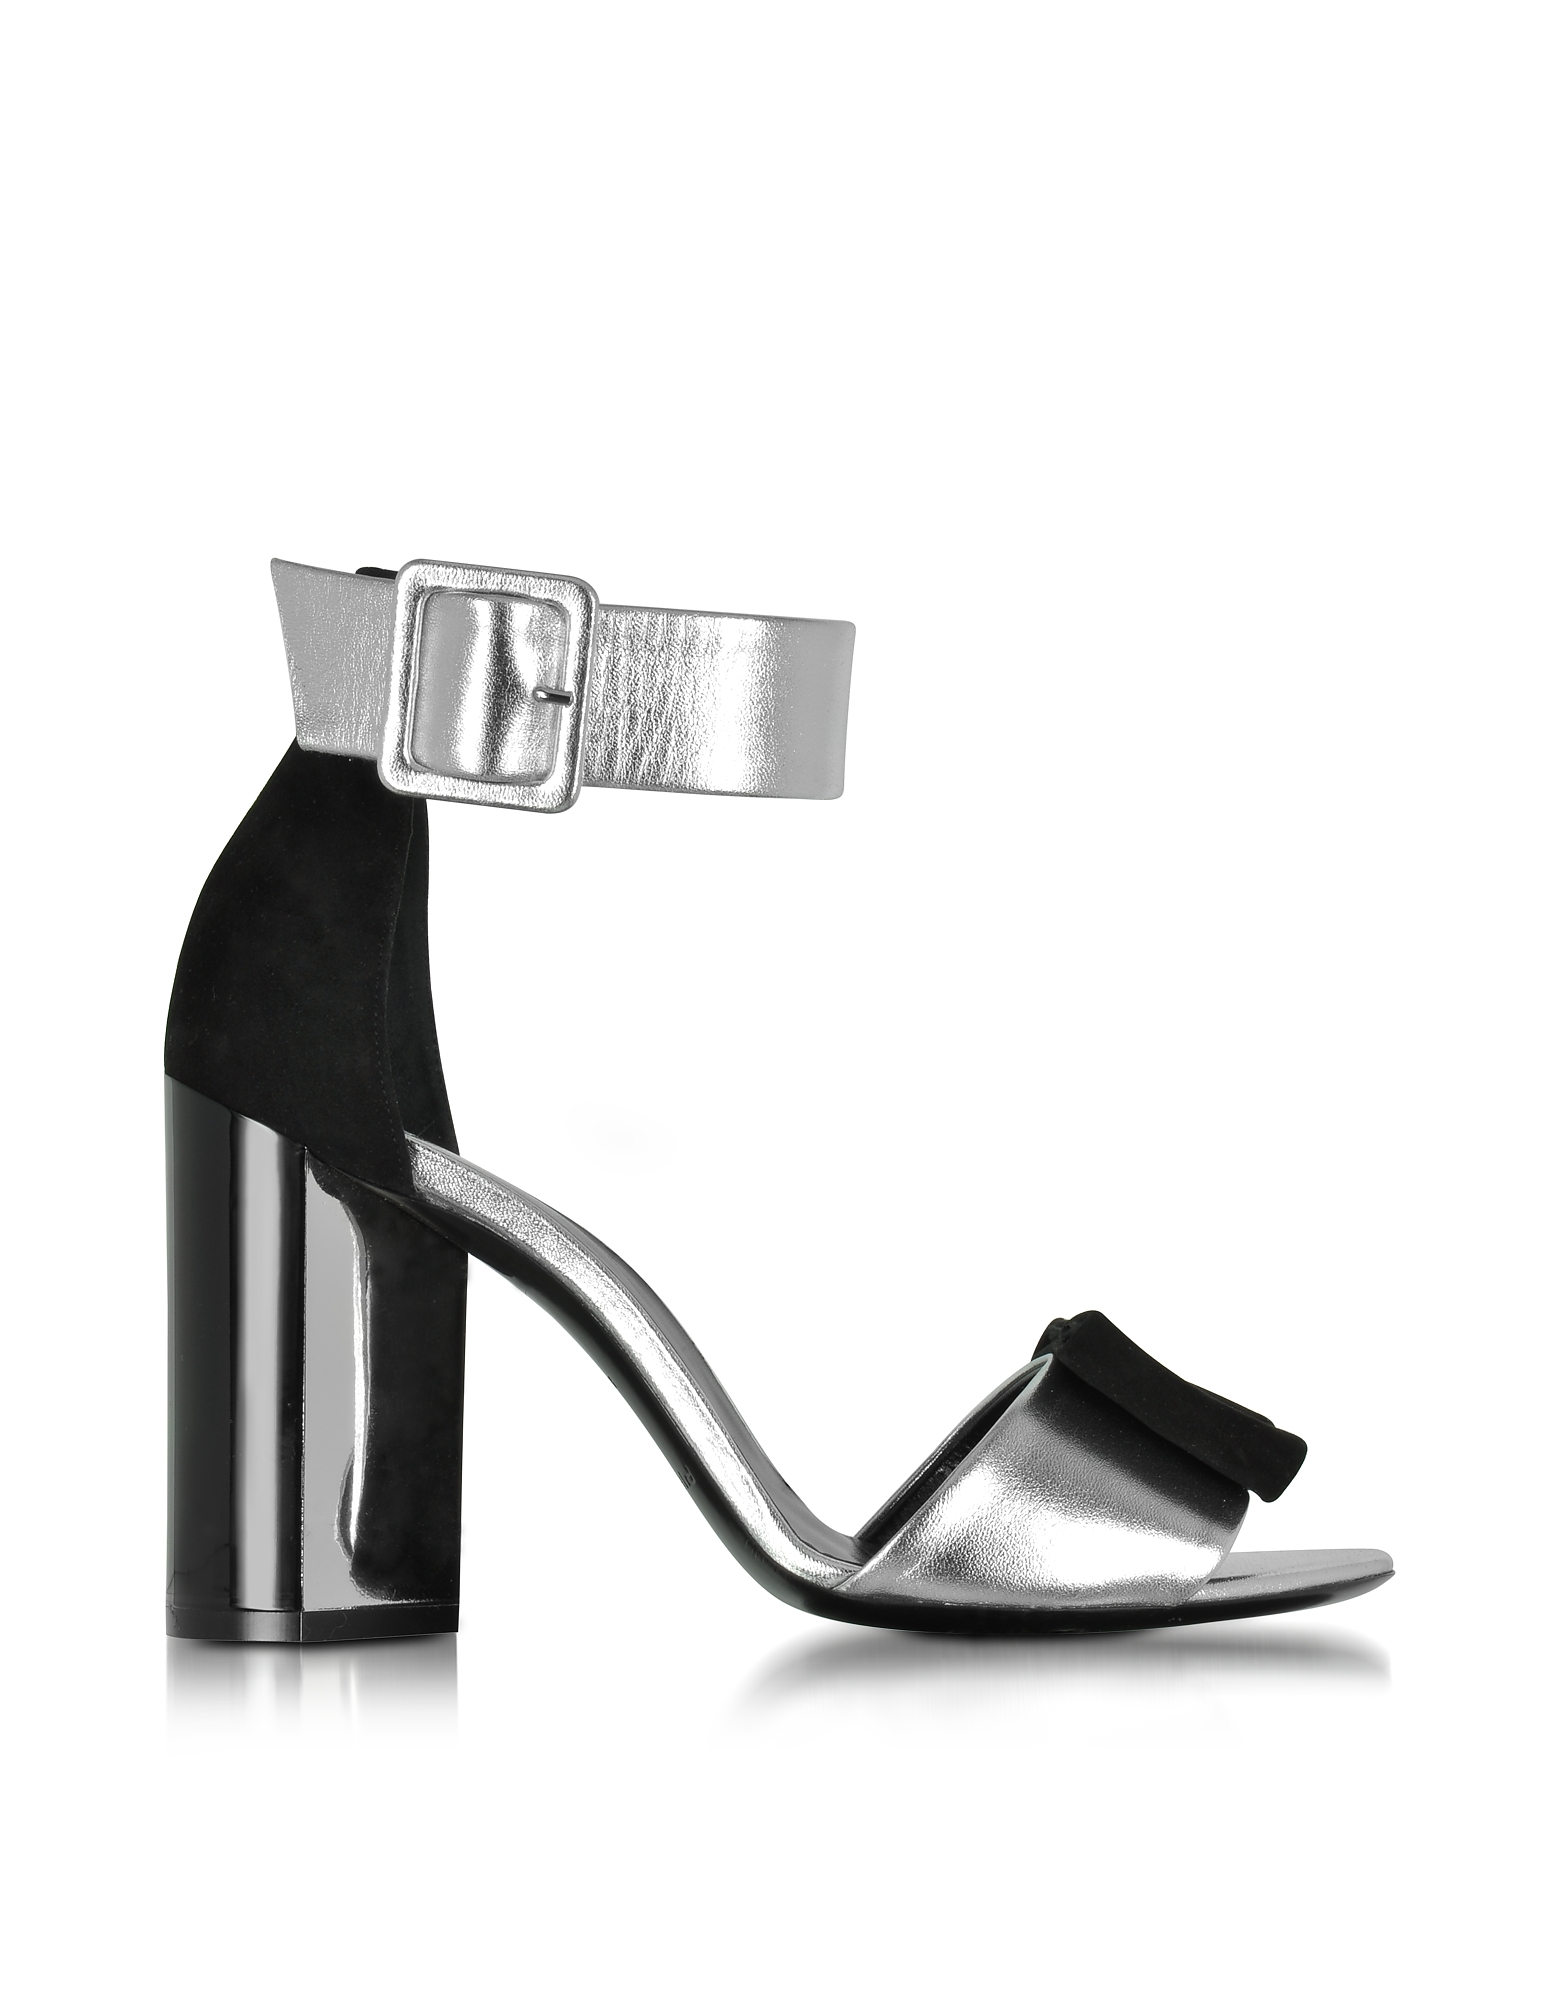 Pierre Hardy Shoes, Obi Black Suede & Silver Leather Sandal